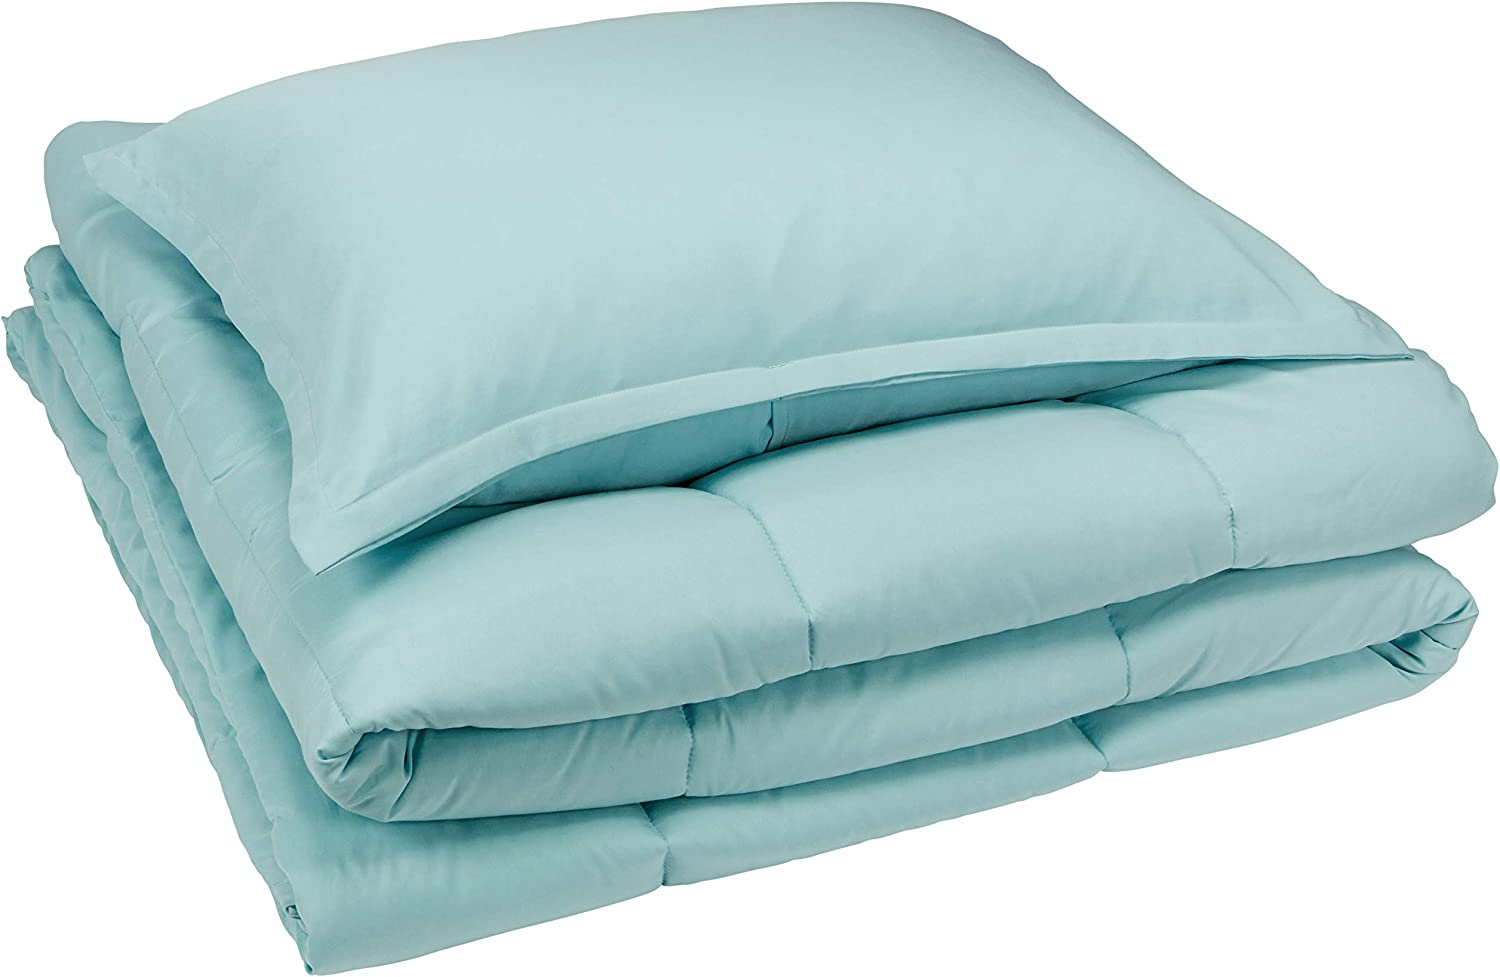 AmazonBasics Comforter Set, Twin / Twin XL, Sea Foam Green, Microfiber, Ultra-Soft